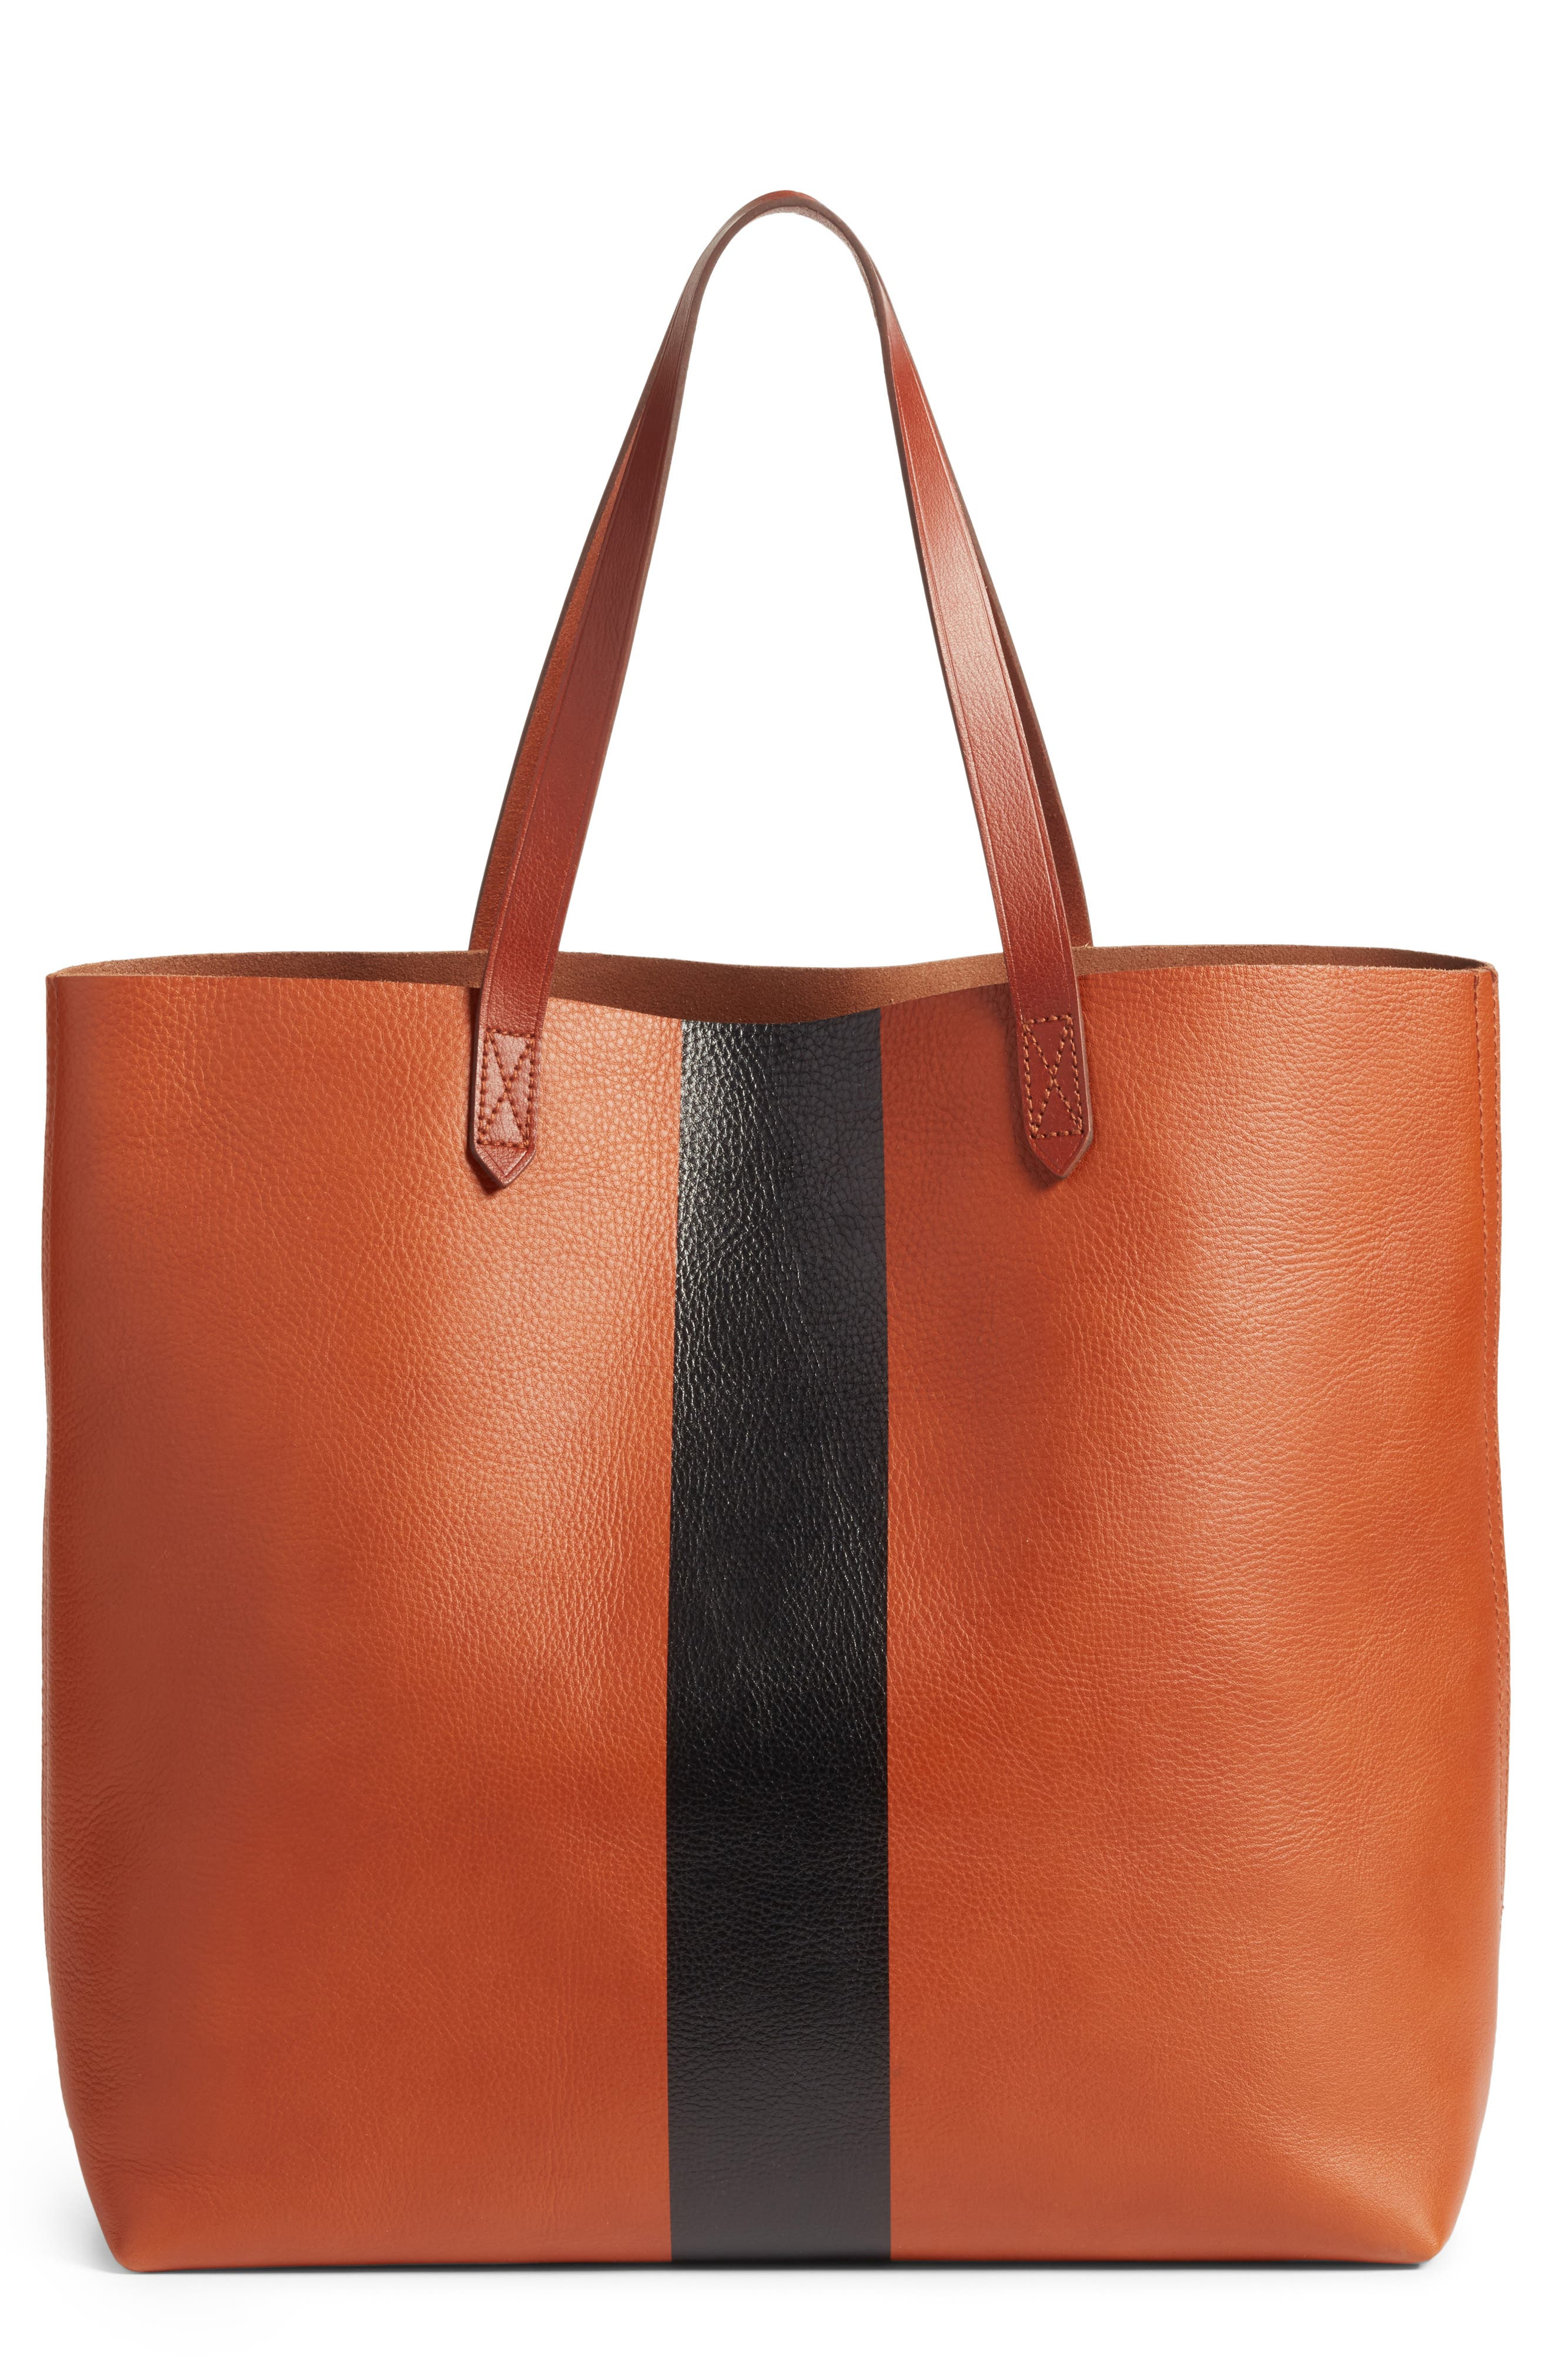 Madewell Paint Stripe Transport Leather Tote